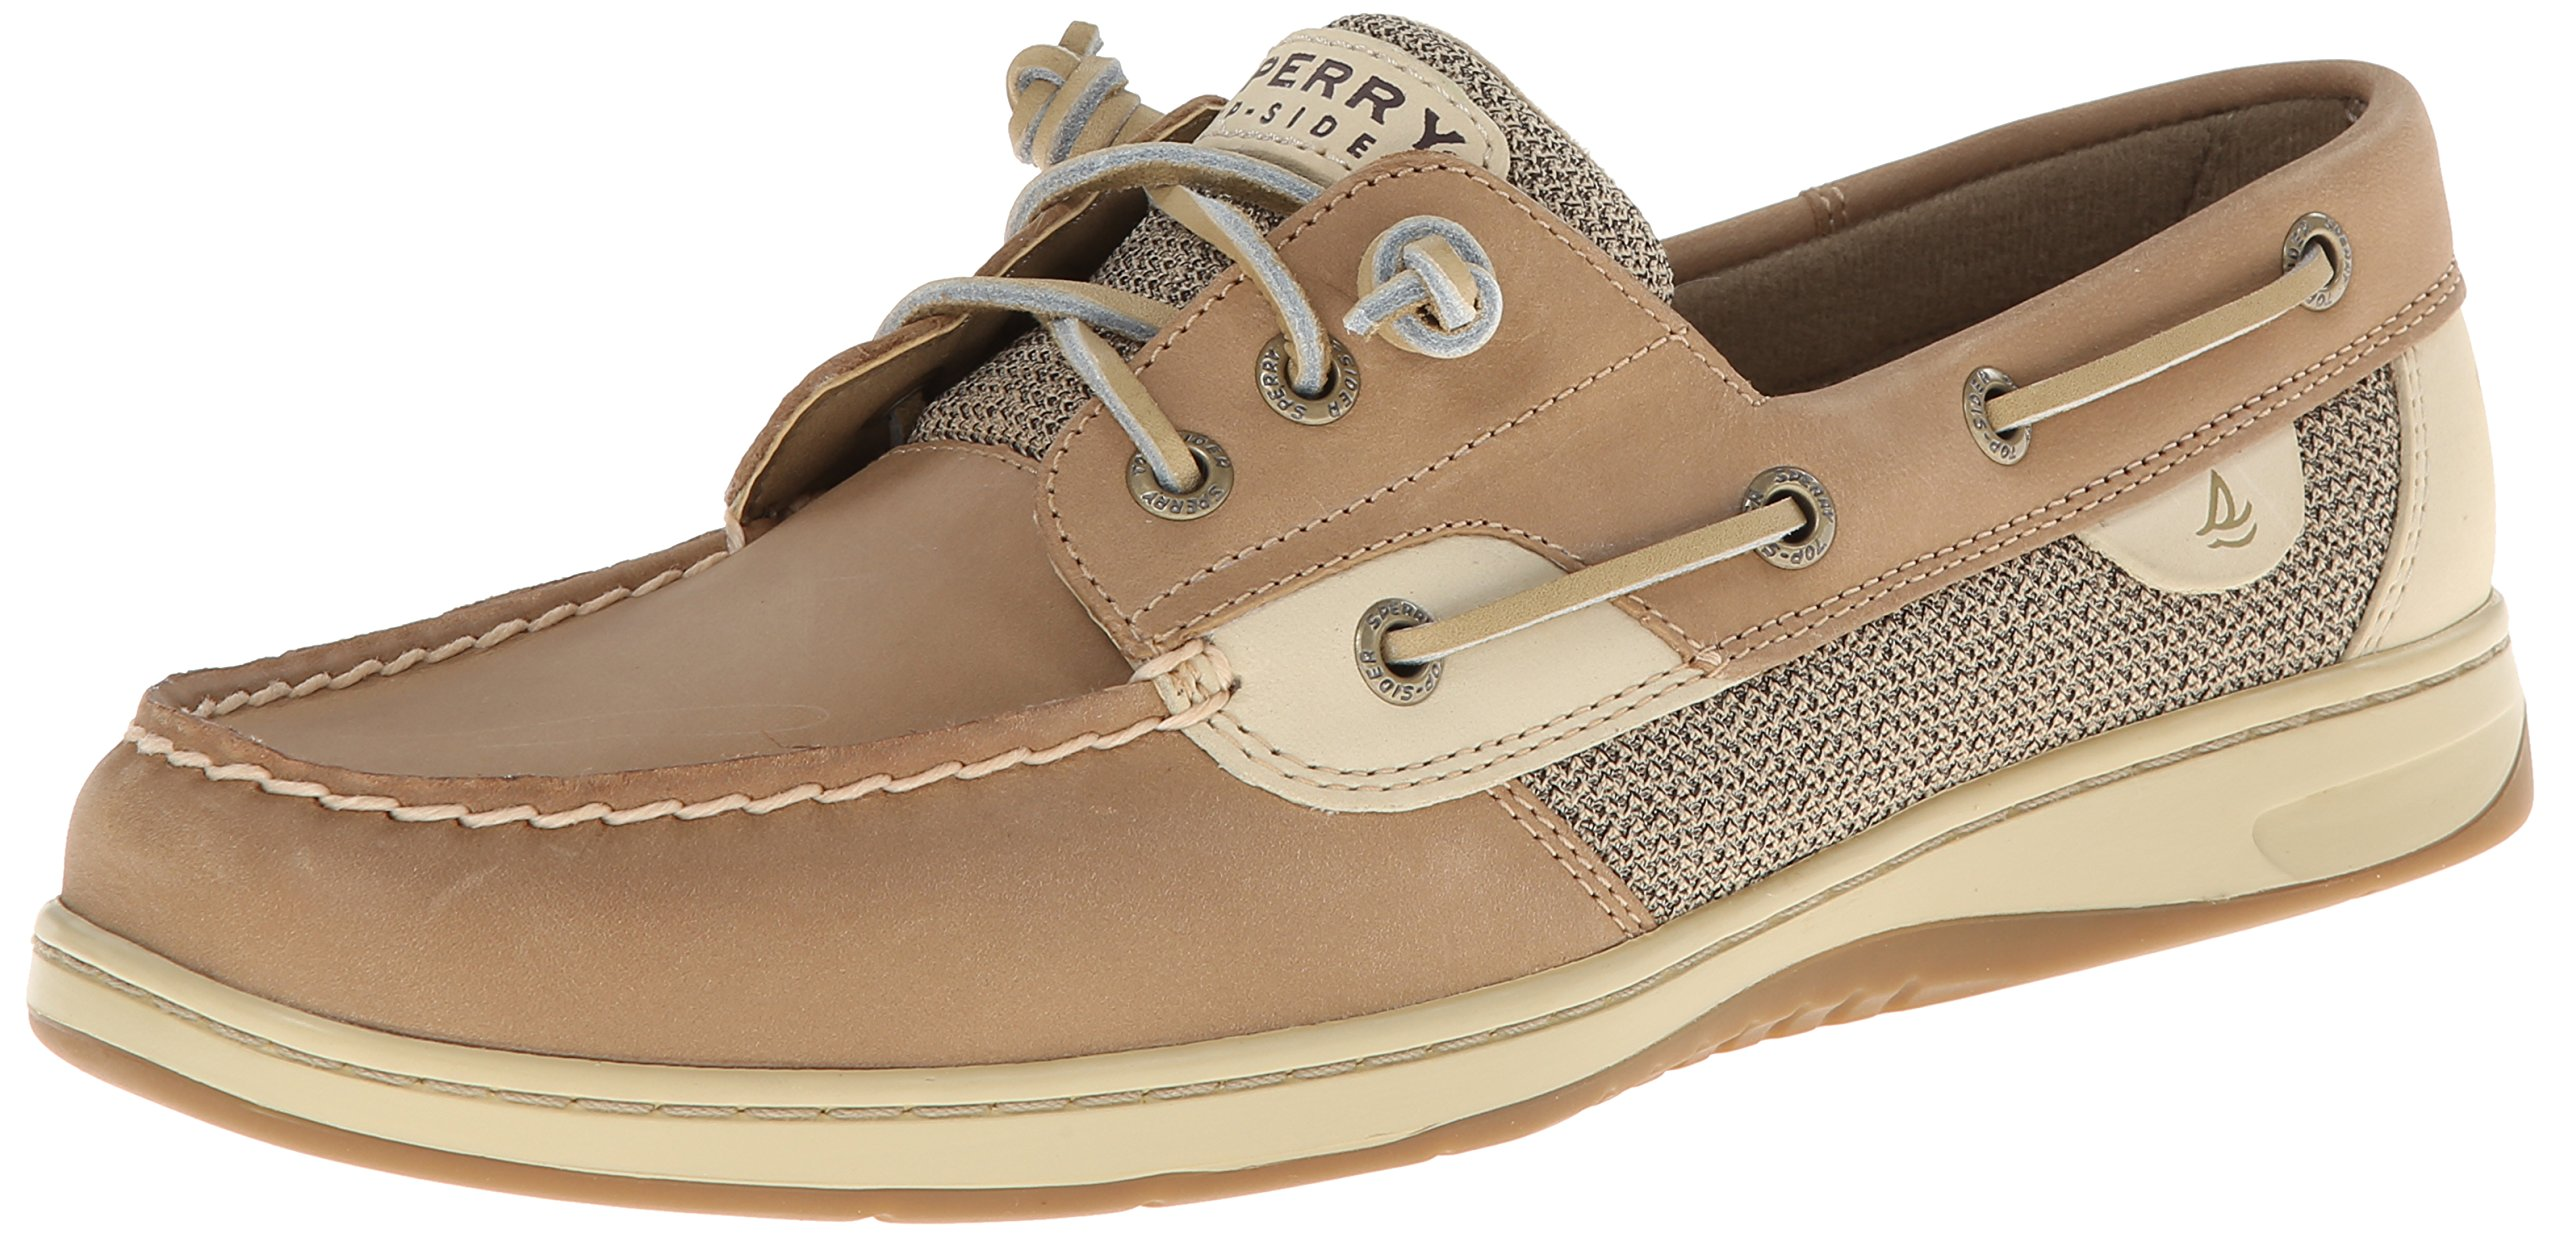 Amazon Com Sperrys Women S Shoes